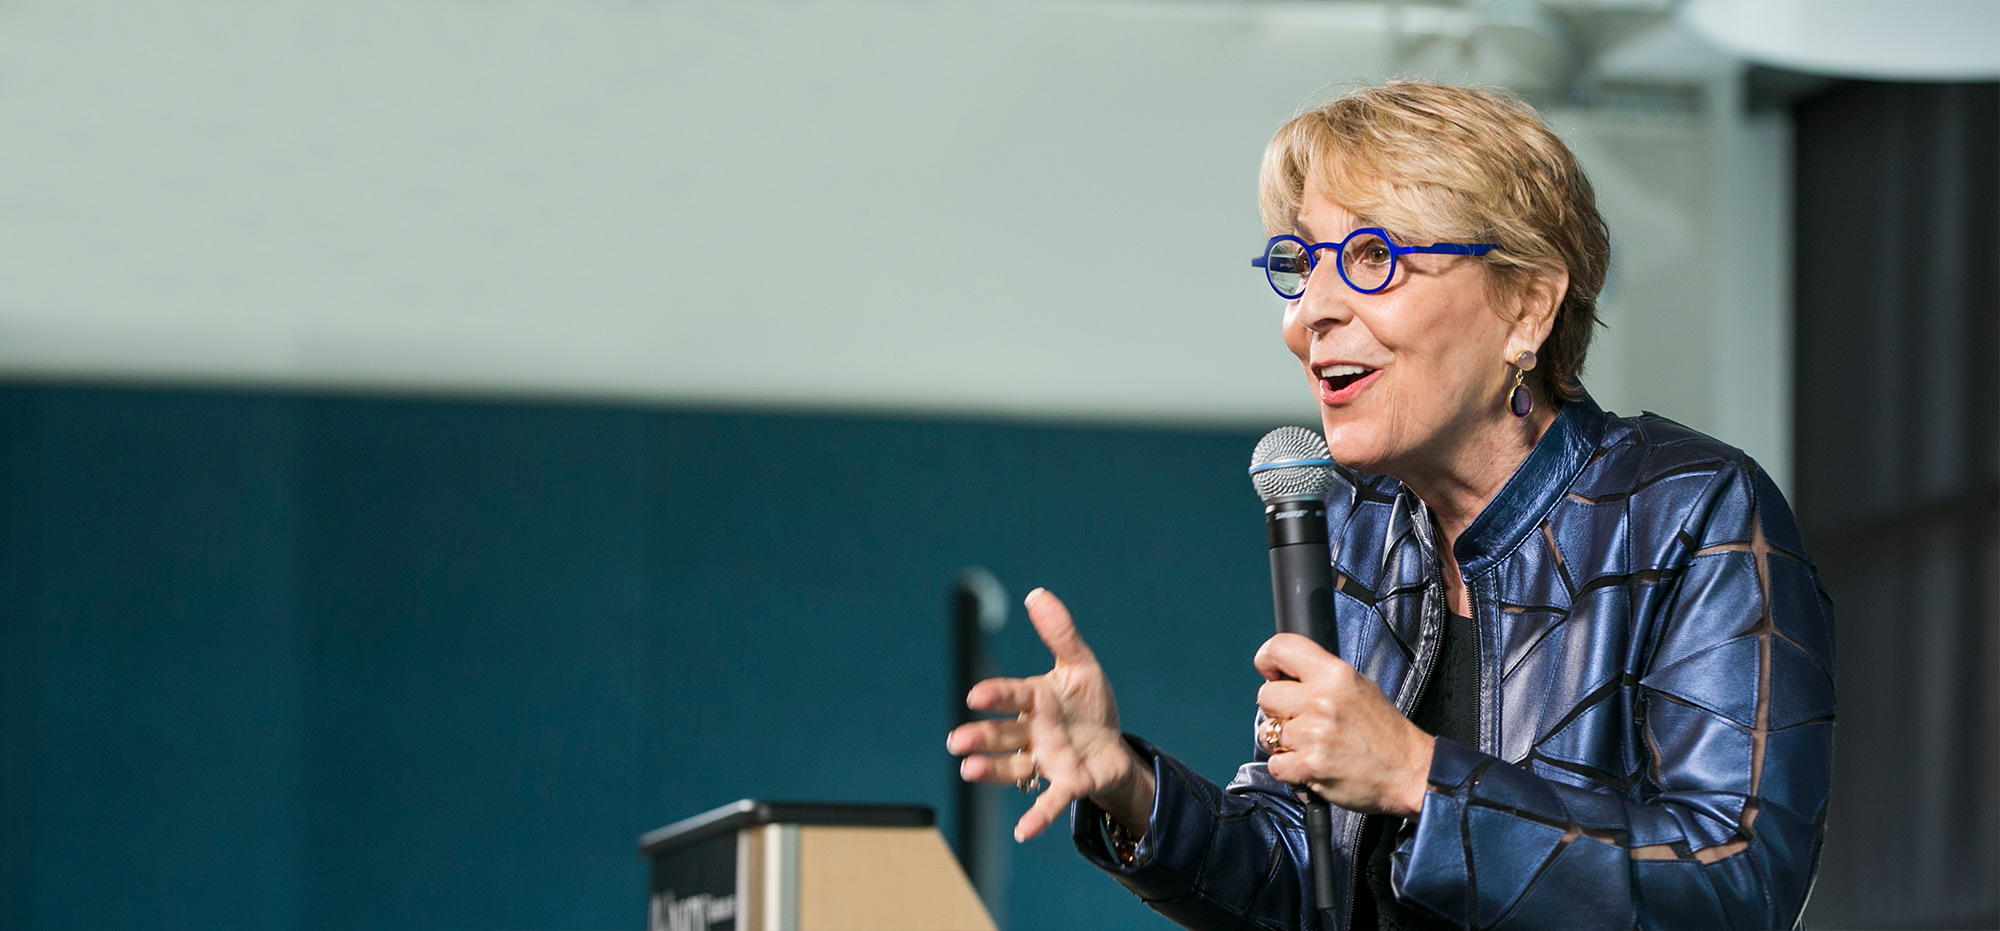 Peggy Klaus speaking at a conference